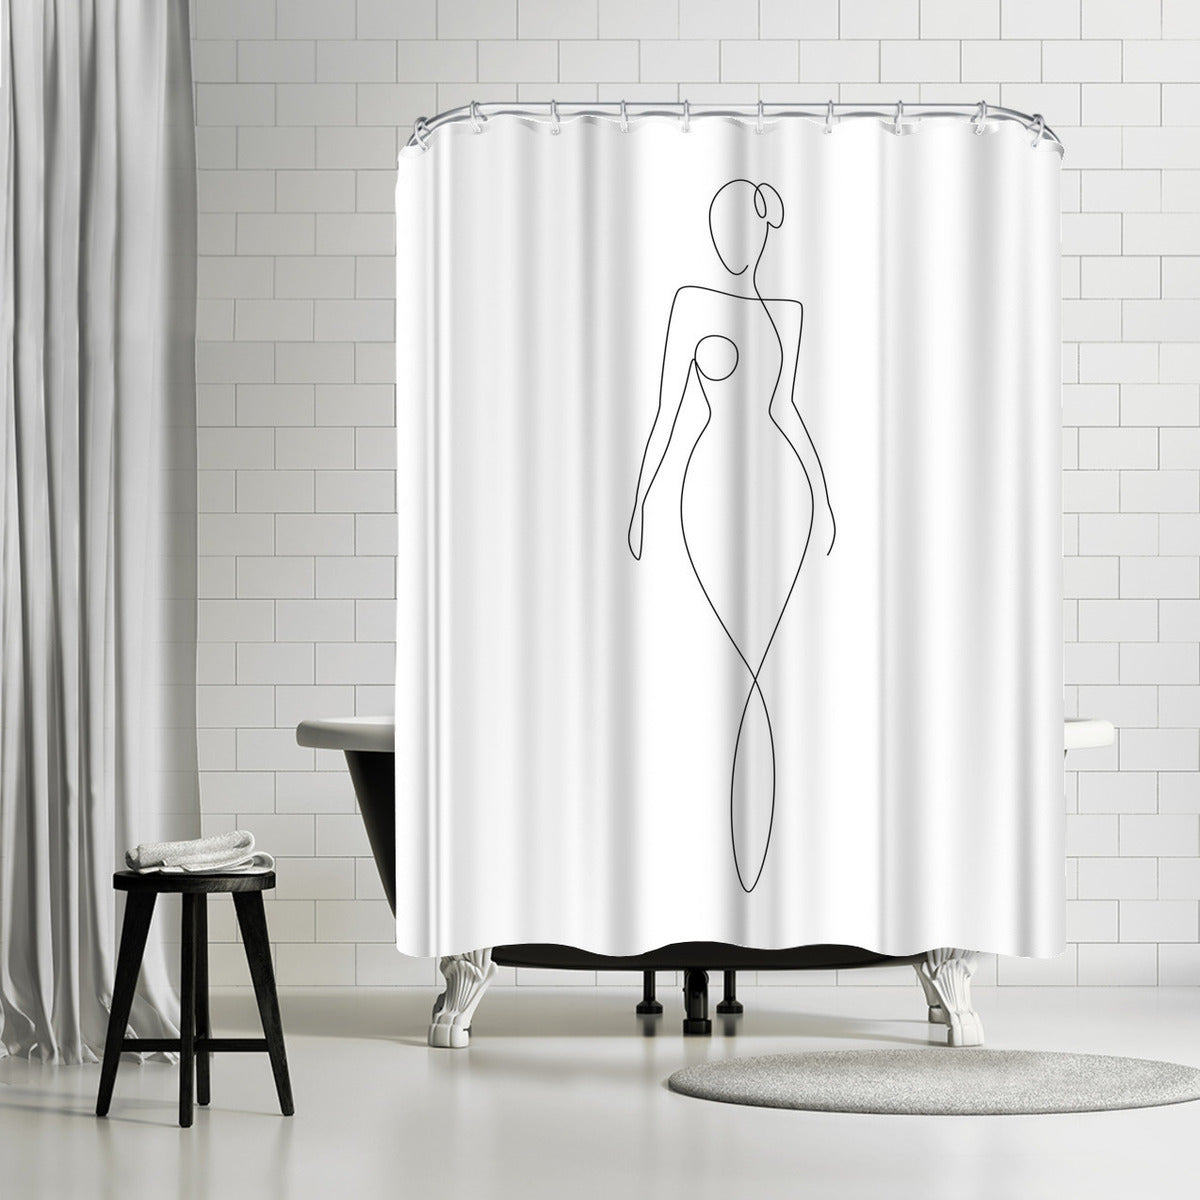 Glamorous Girl by Explicit Design Shower Curtain -  - Americanflat